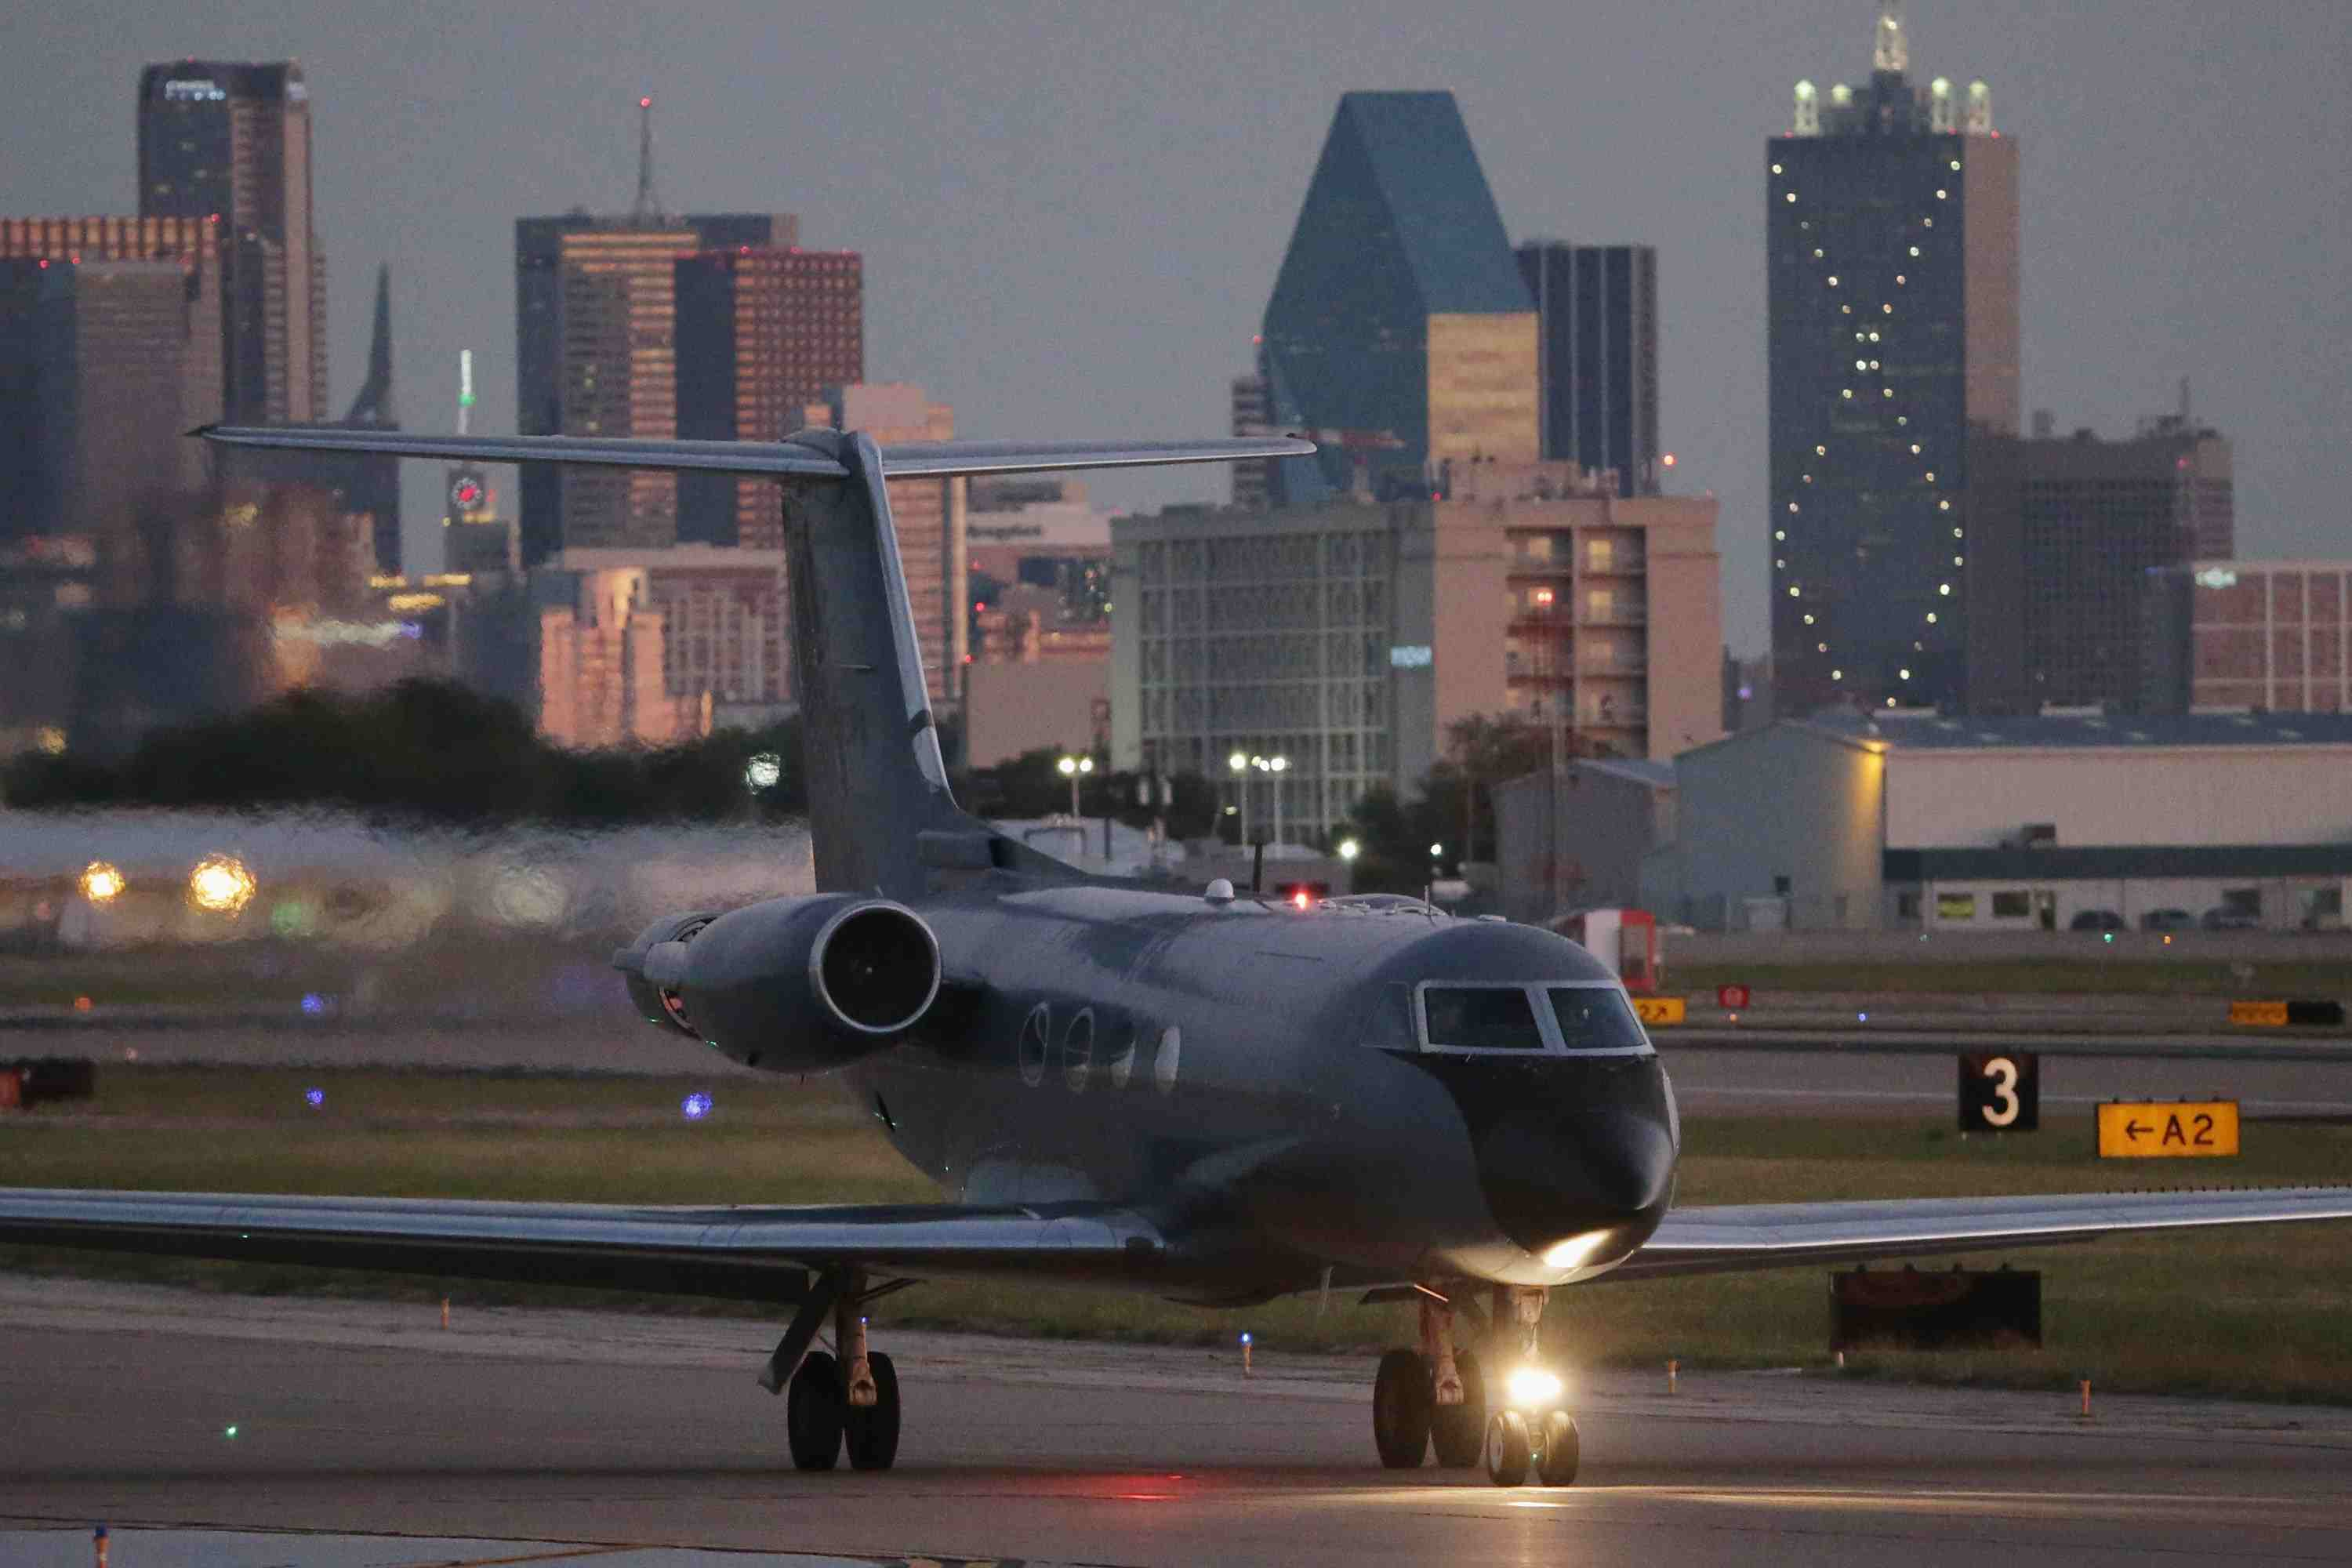 A private plane taxis on the runway at Dallas Love Field